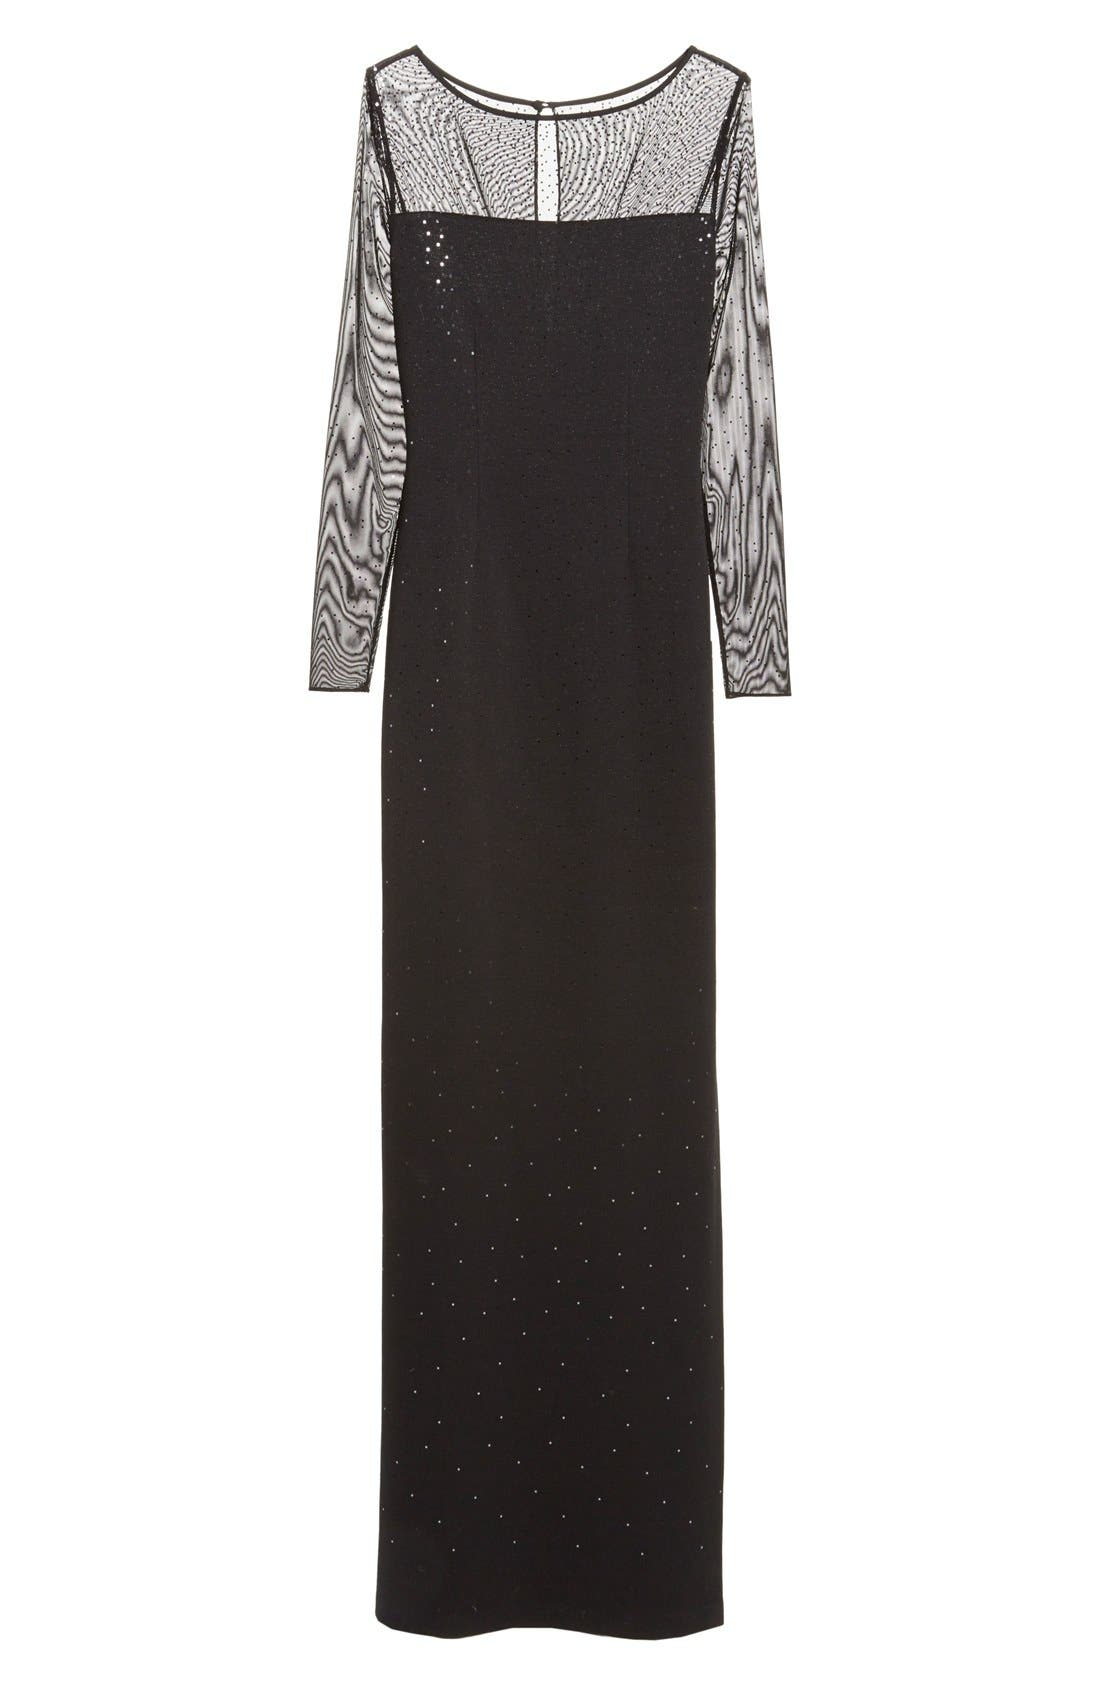 ST. JOHN COLLECTION, Embellished Shimmer Milano Knit Gown, Alternate thumbnail 2, color, 001